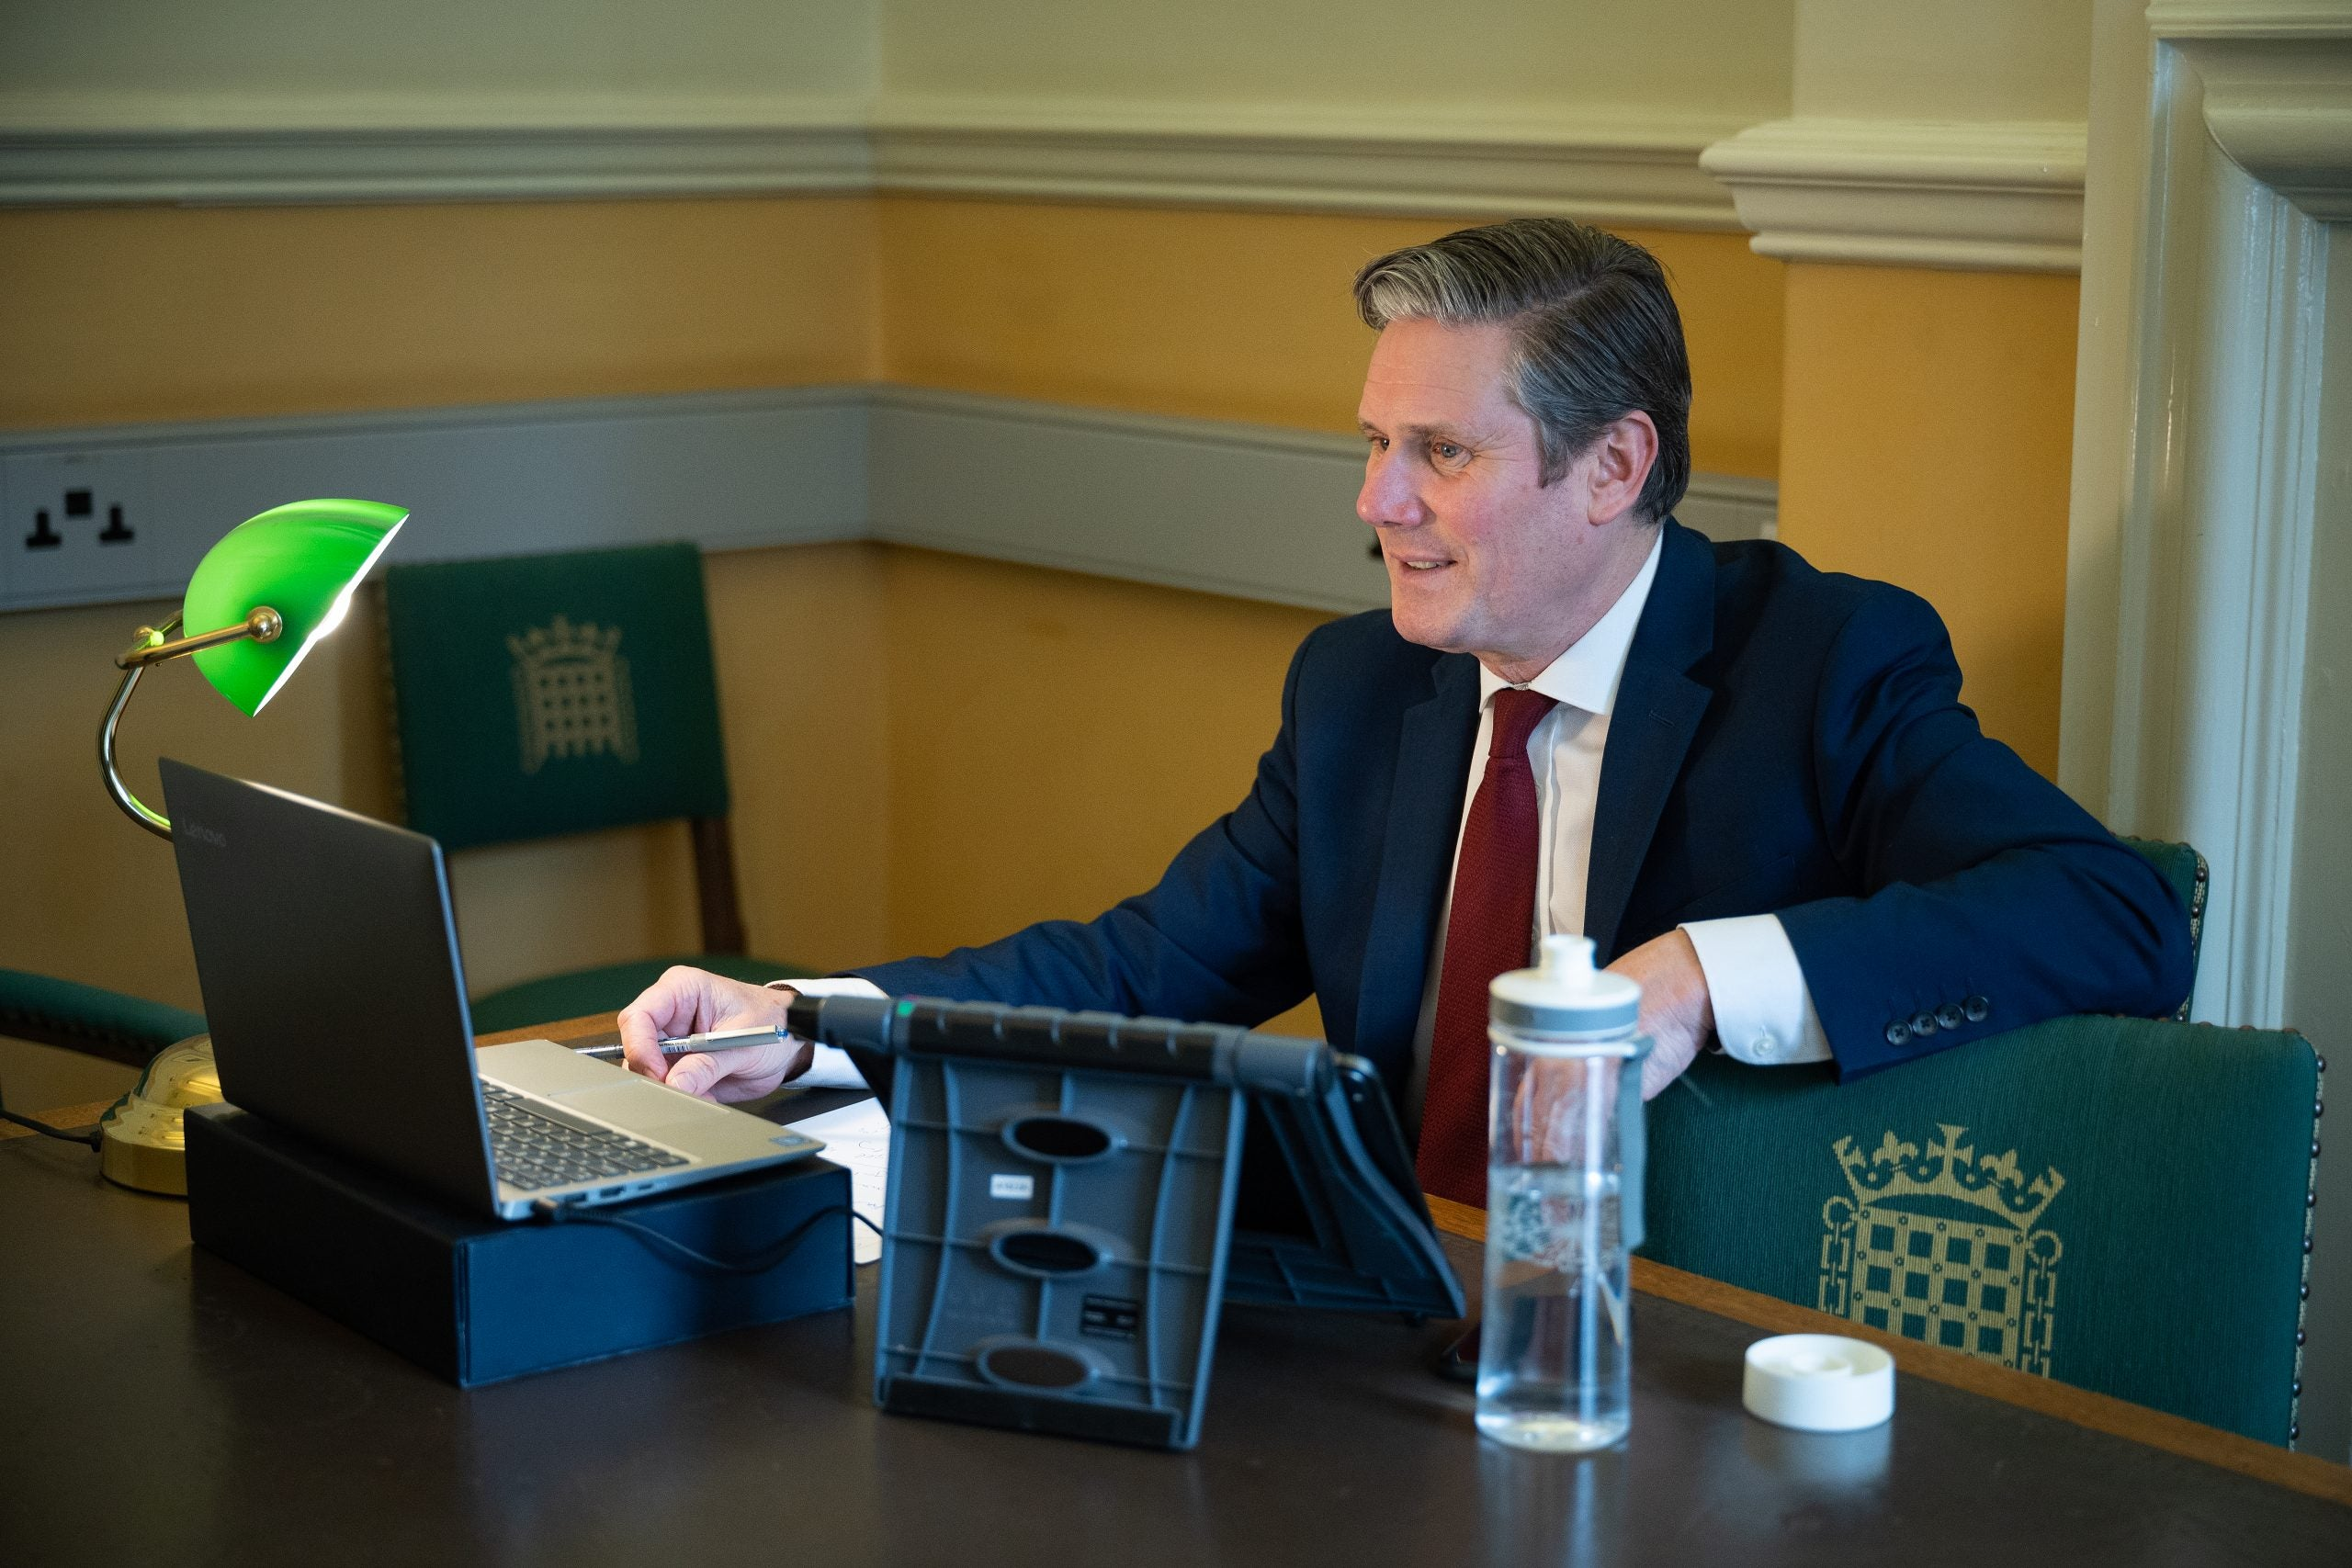 Keir Starmer opens up clear lead over Boris Johnson in public approval